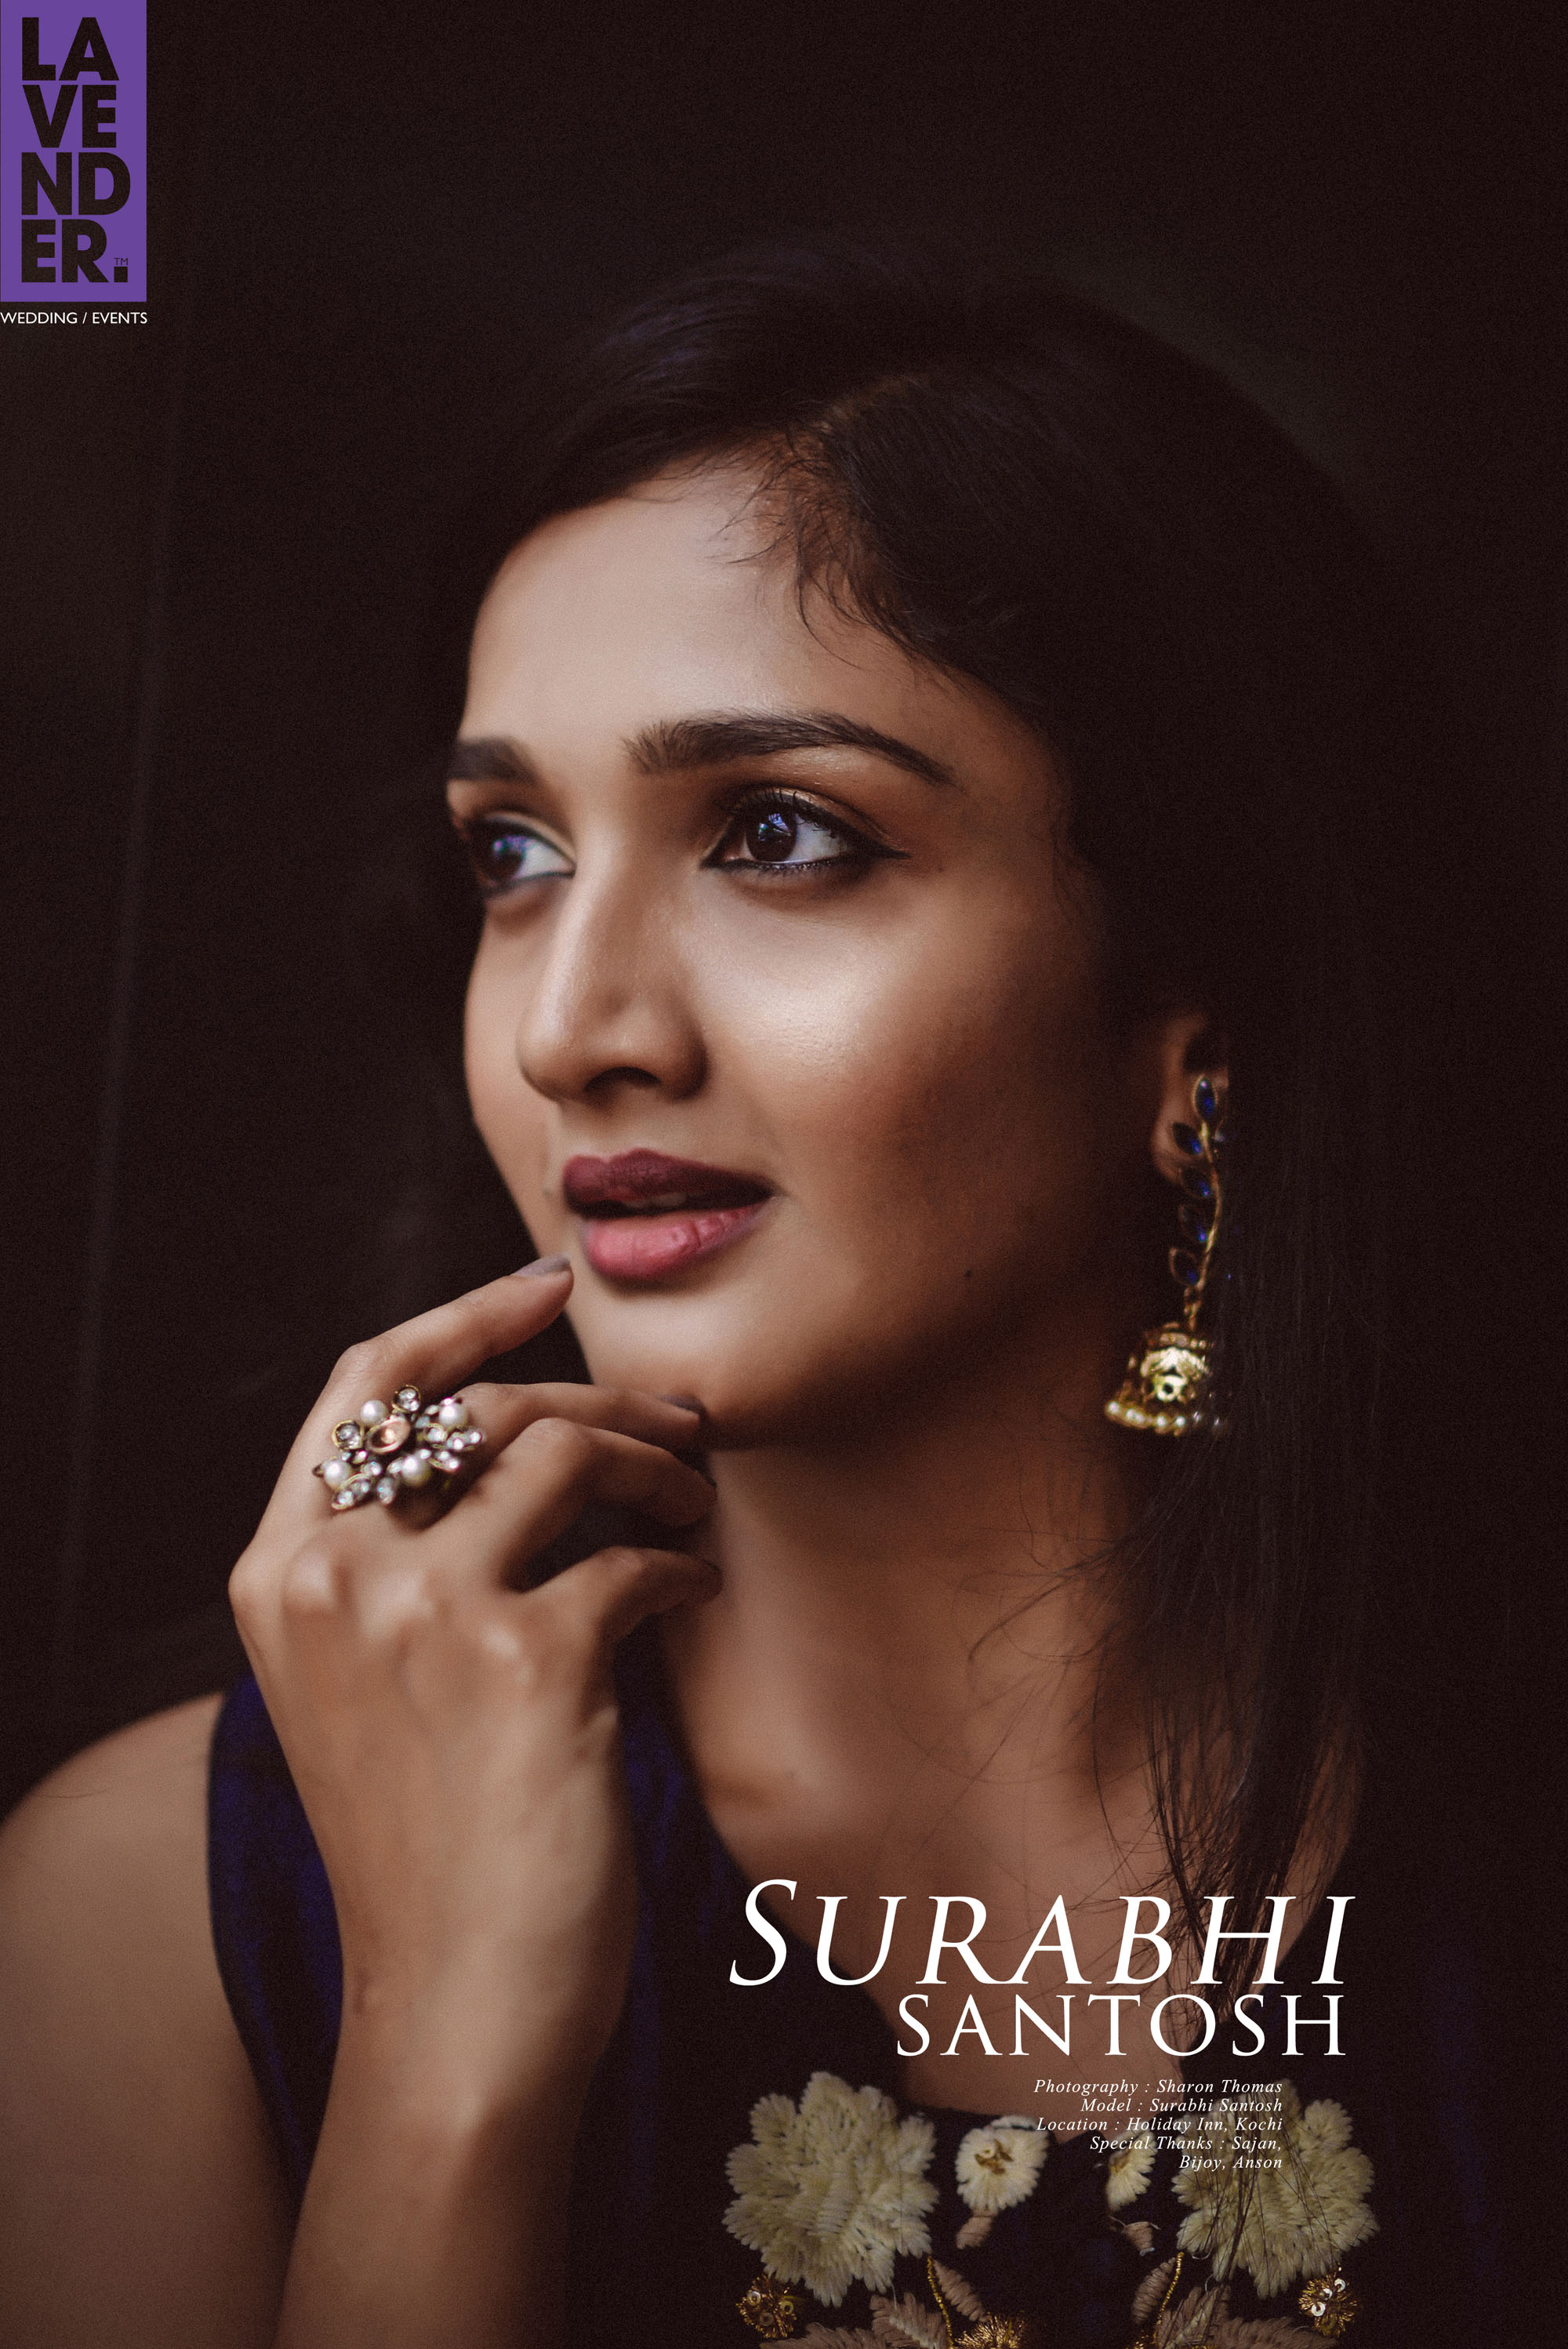 surabhi santosh ,surabhi santosh new stills ,actress surabhi santosh photoshoot ,surabhi santosh photos ,suraphi santosh stills images ,lavender wedding shoot ,lavender actress shoot